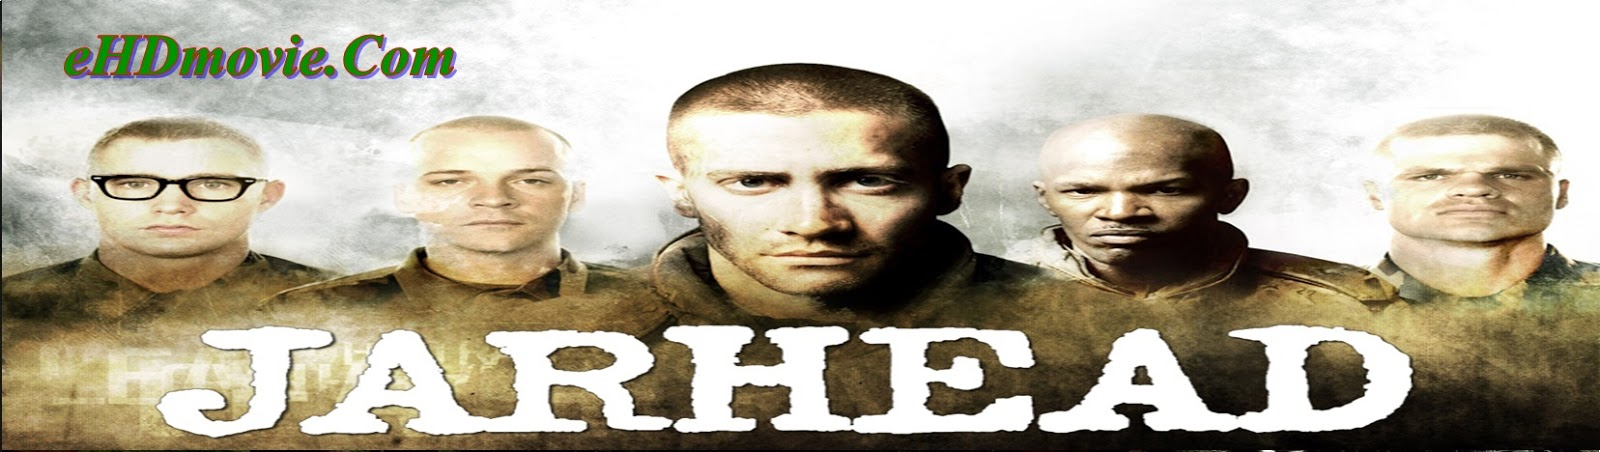 Jarhead 2005 Full Movie English 720p - 480p ORG BRRip 400MB - 800MB ESubs Free Download